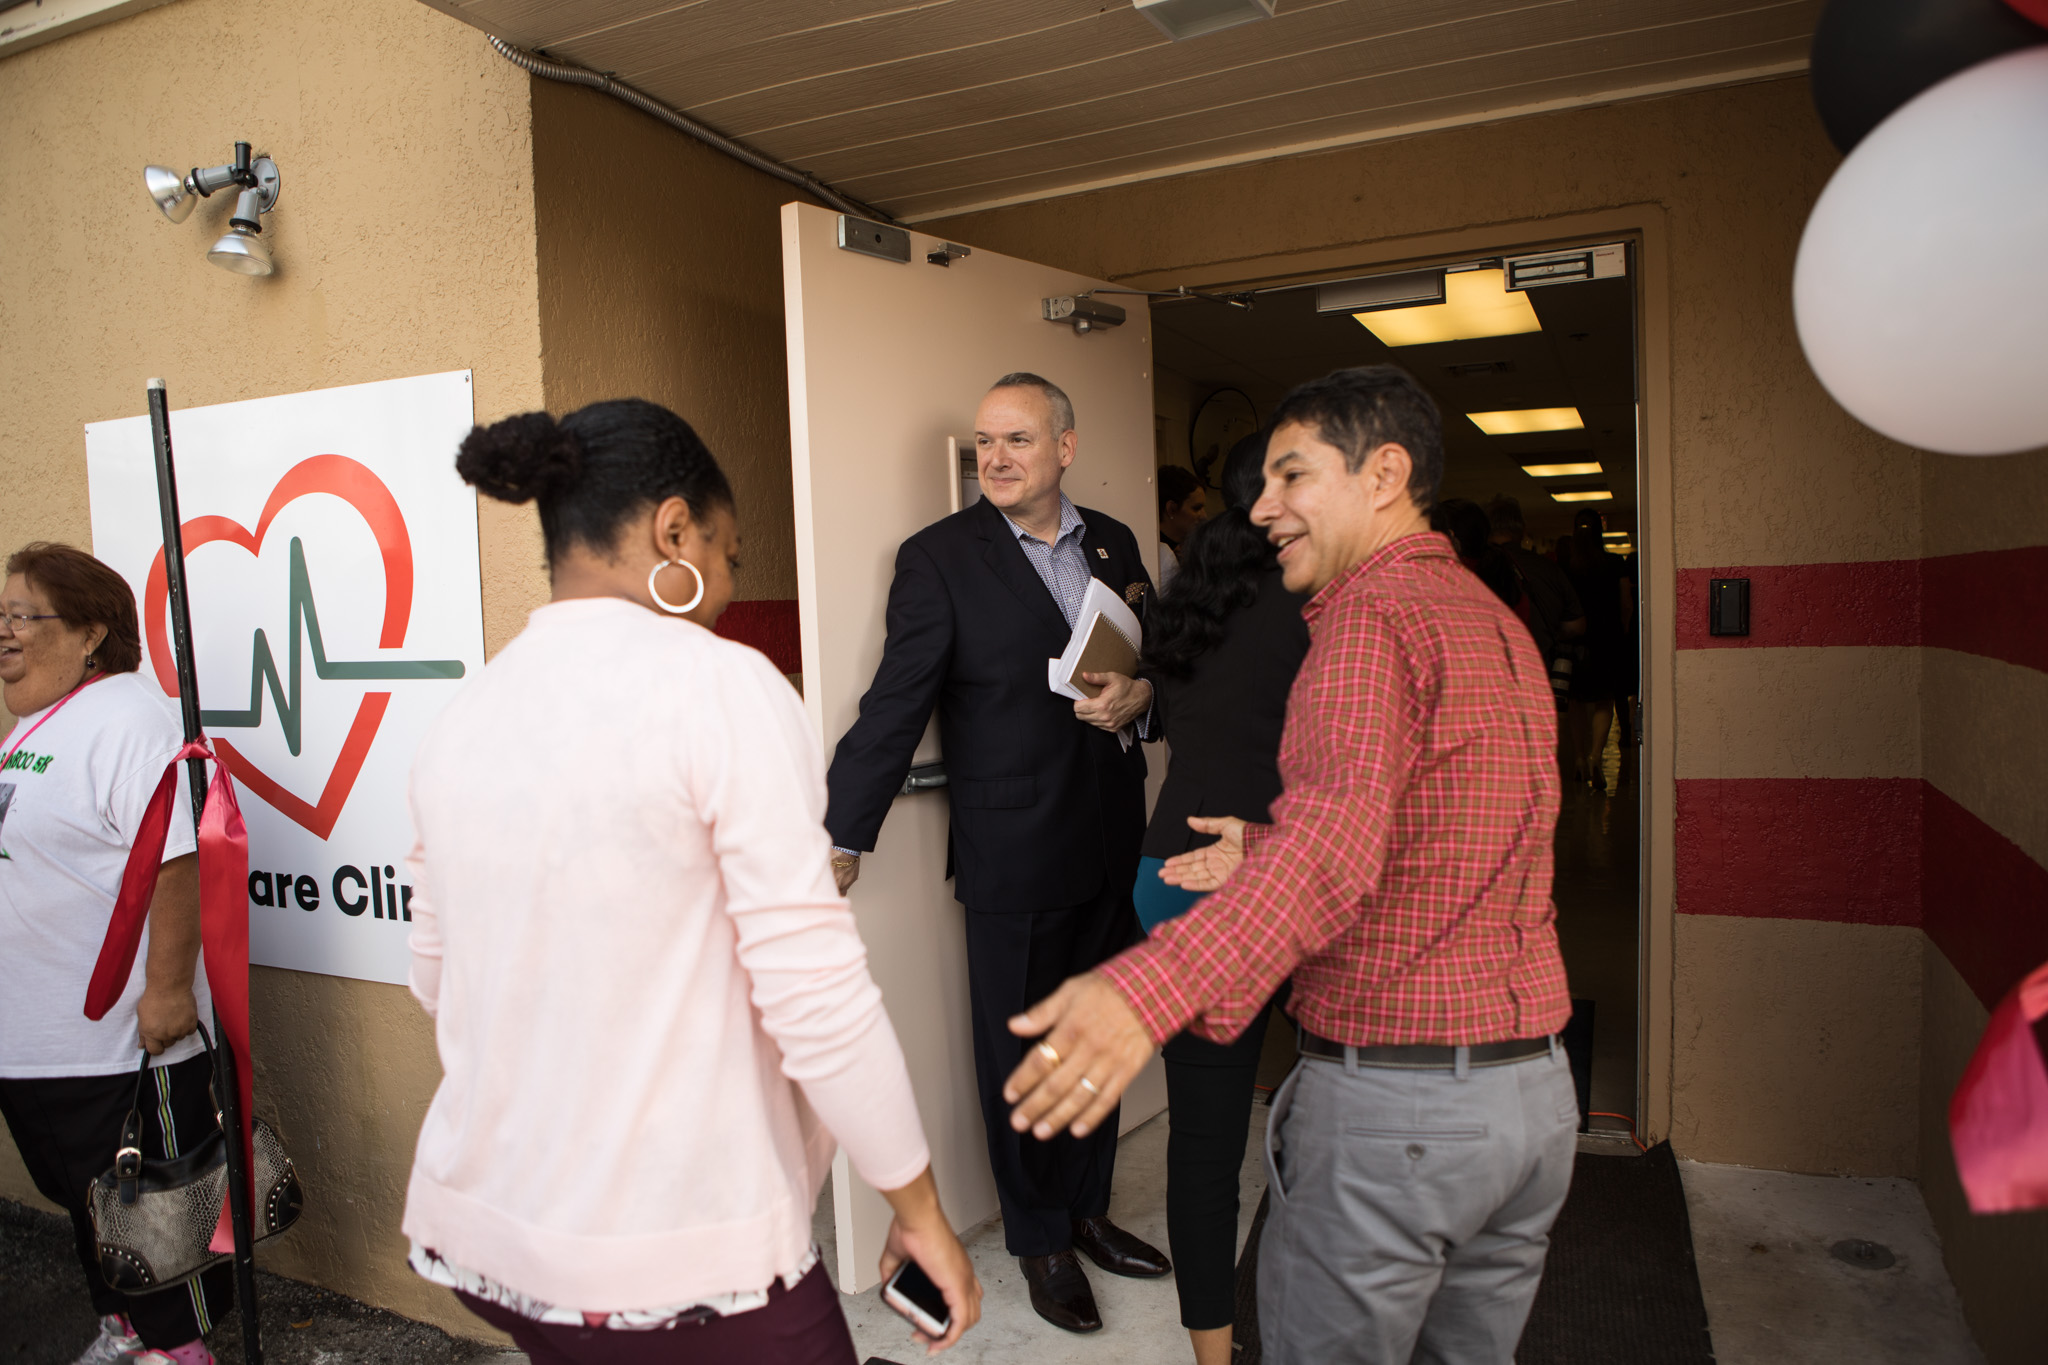 San Antonio AIDS Foundation Vice President of Communications Ken Slavin (center) holds the door open for (from left) San Antonio AIDS Foundation Chief Operations Officer Aja Jenkins and Mental Health Councelor Francisco Ramirez enter an open house for the Care Clinic.